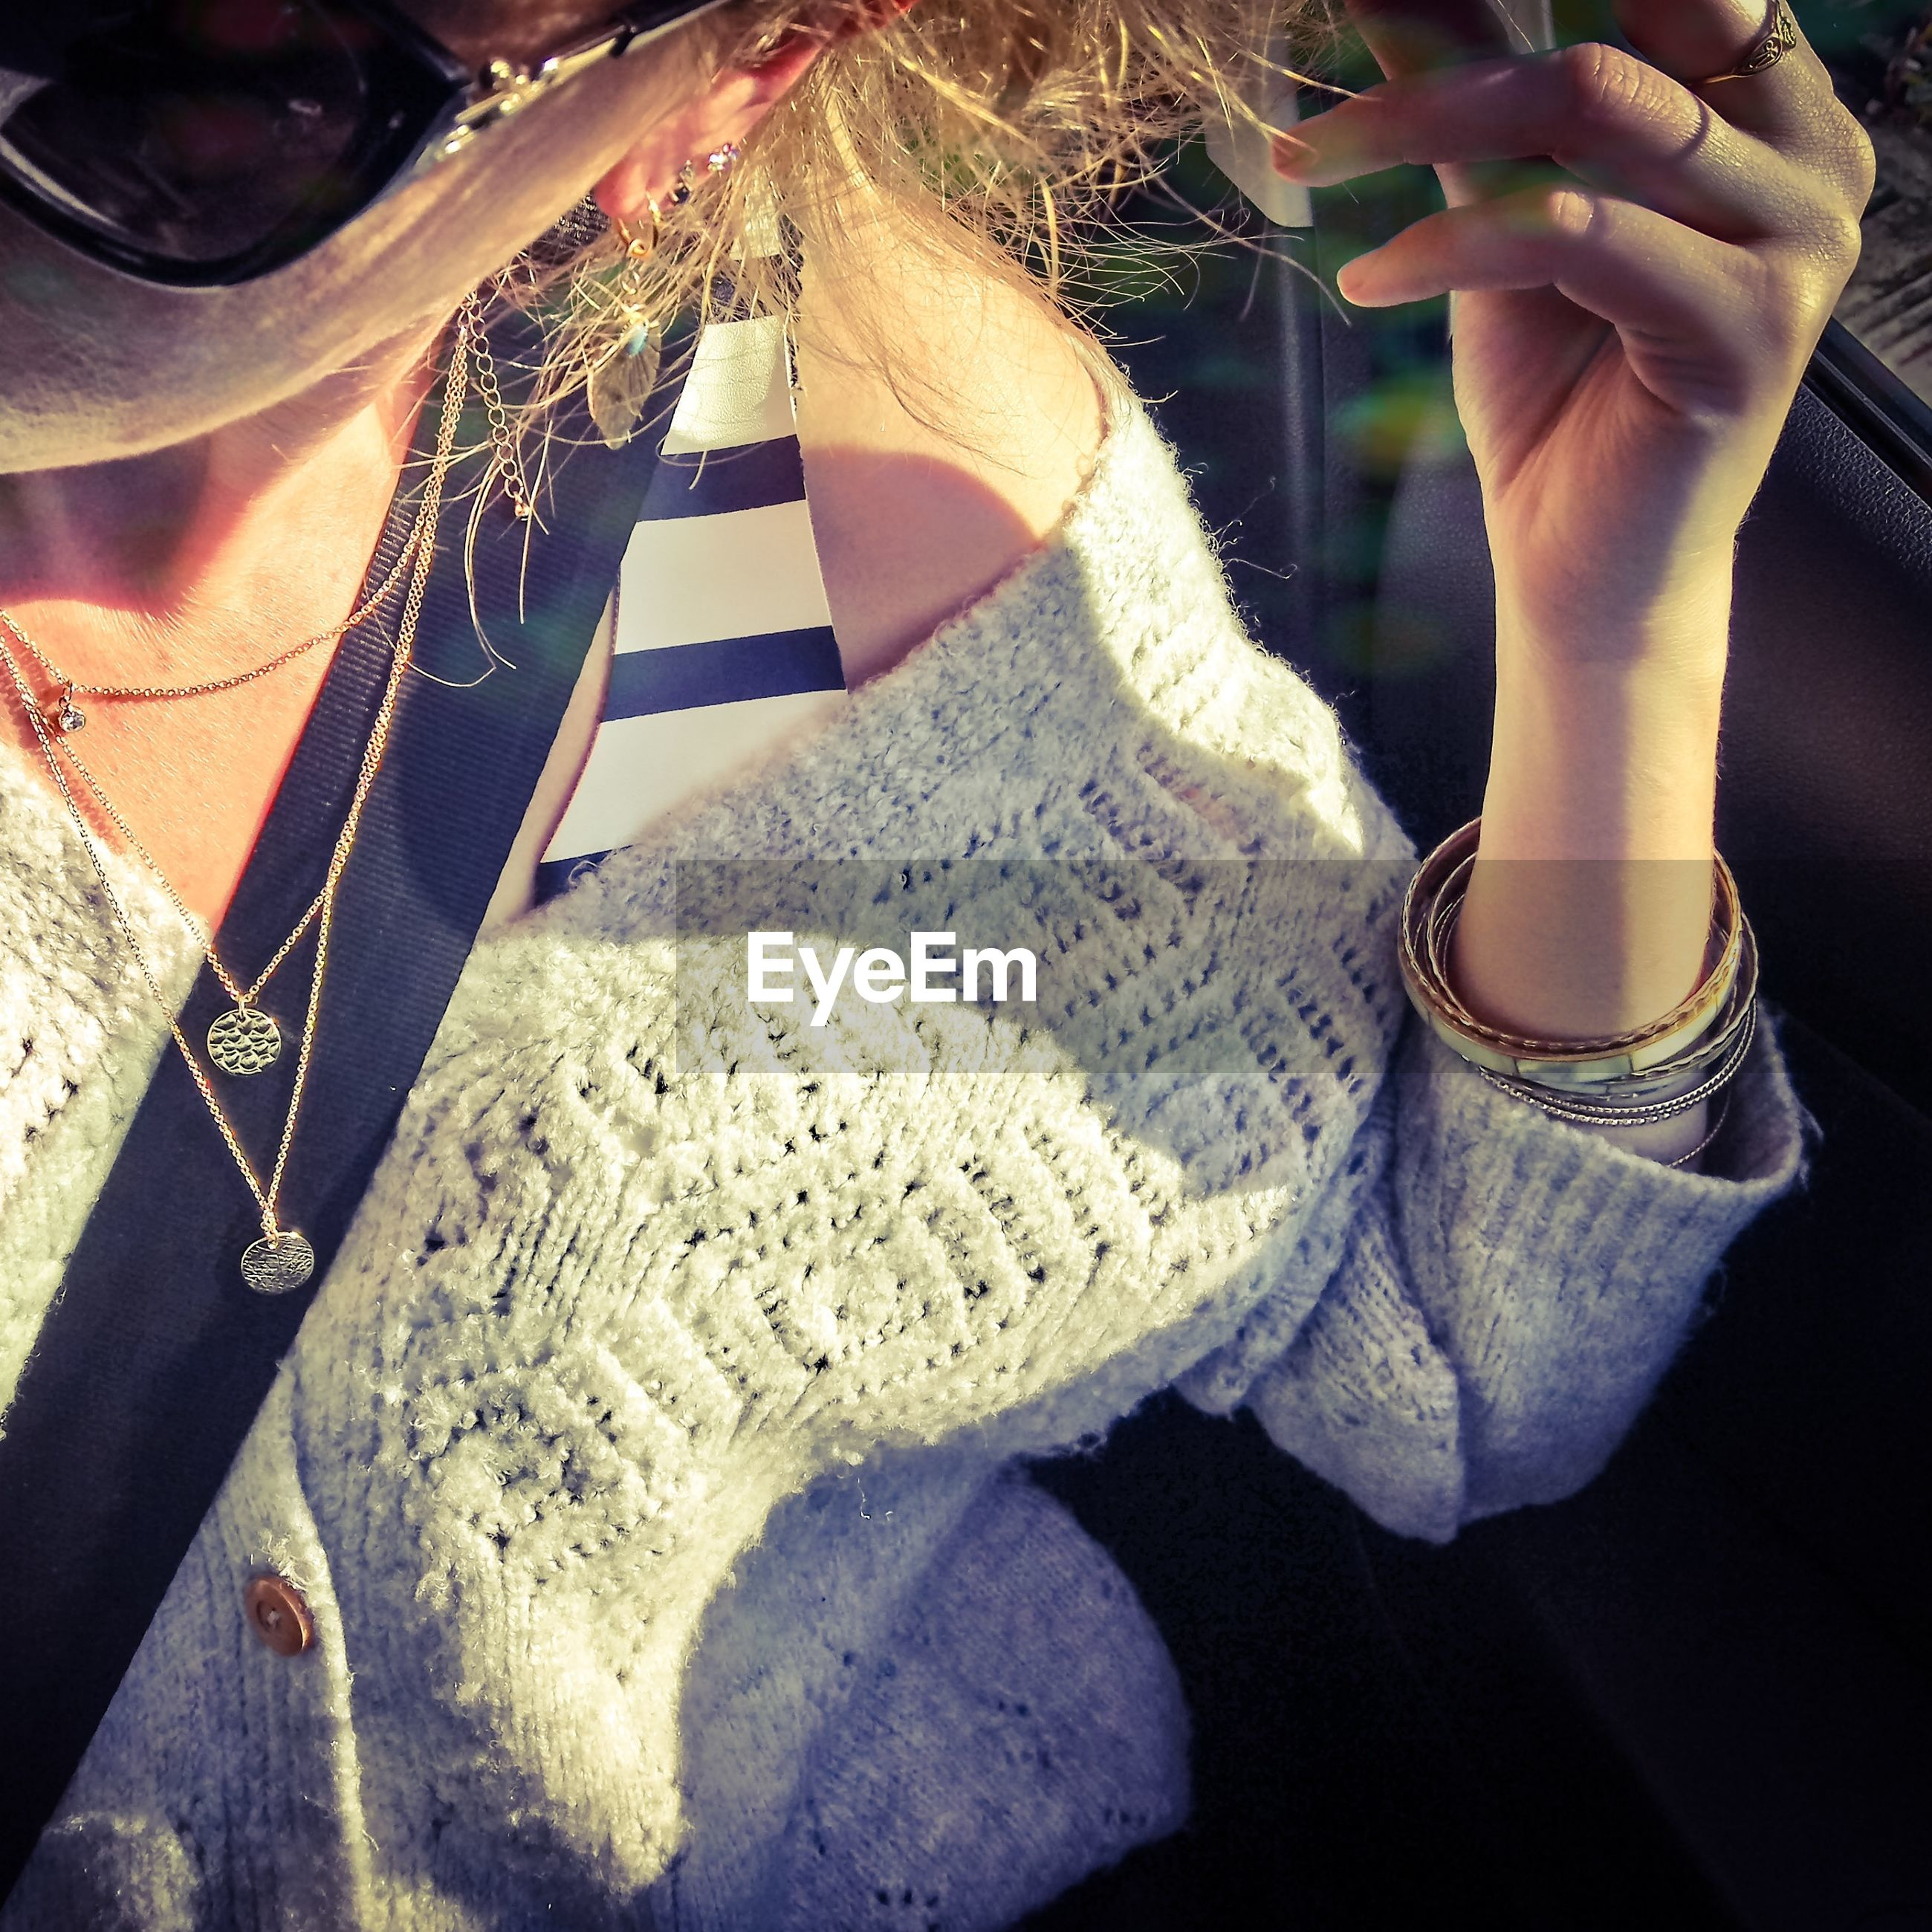 Midsection of woman wearing sunglasses in car